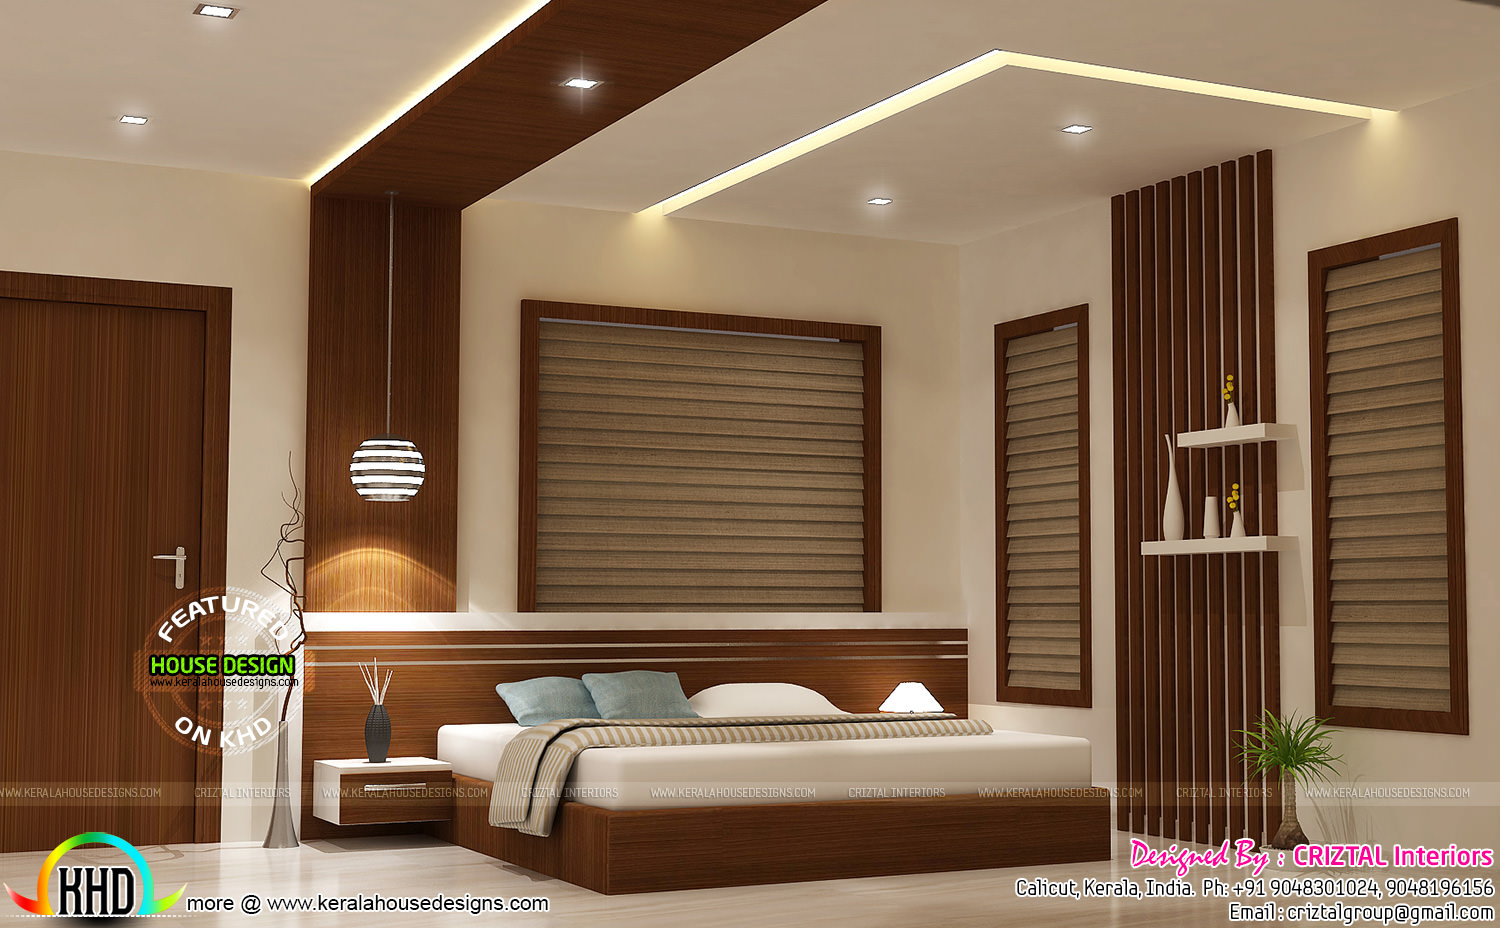 Bedroom dining hall and living interior kerala home for Kerala home interior designs photos